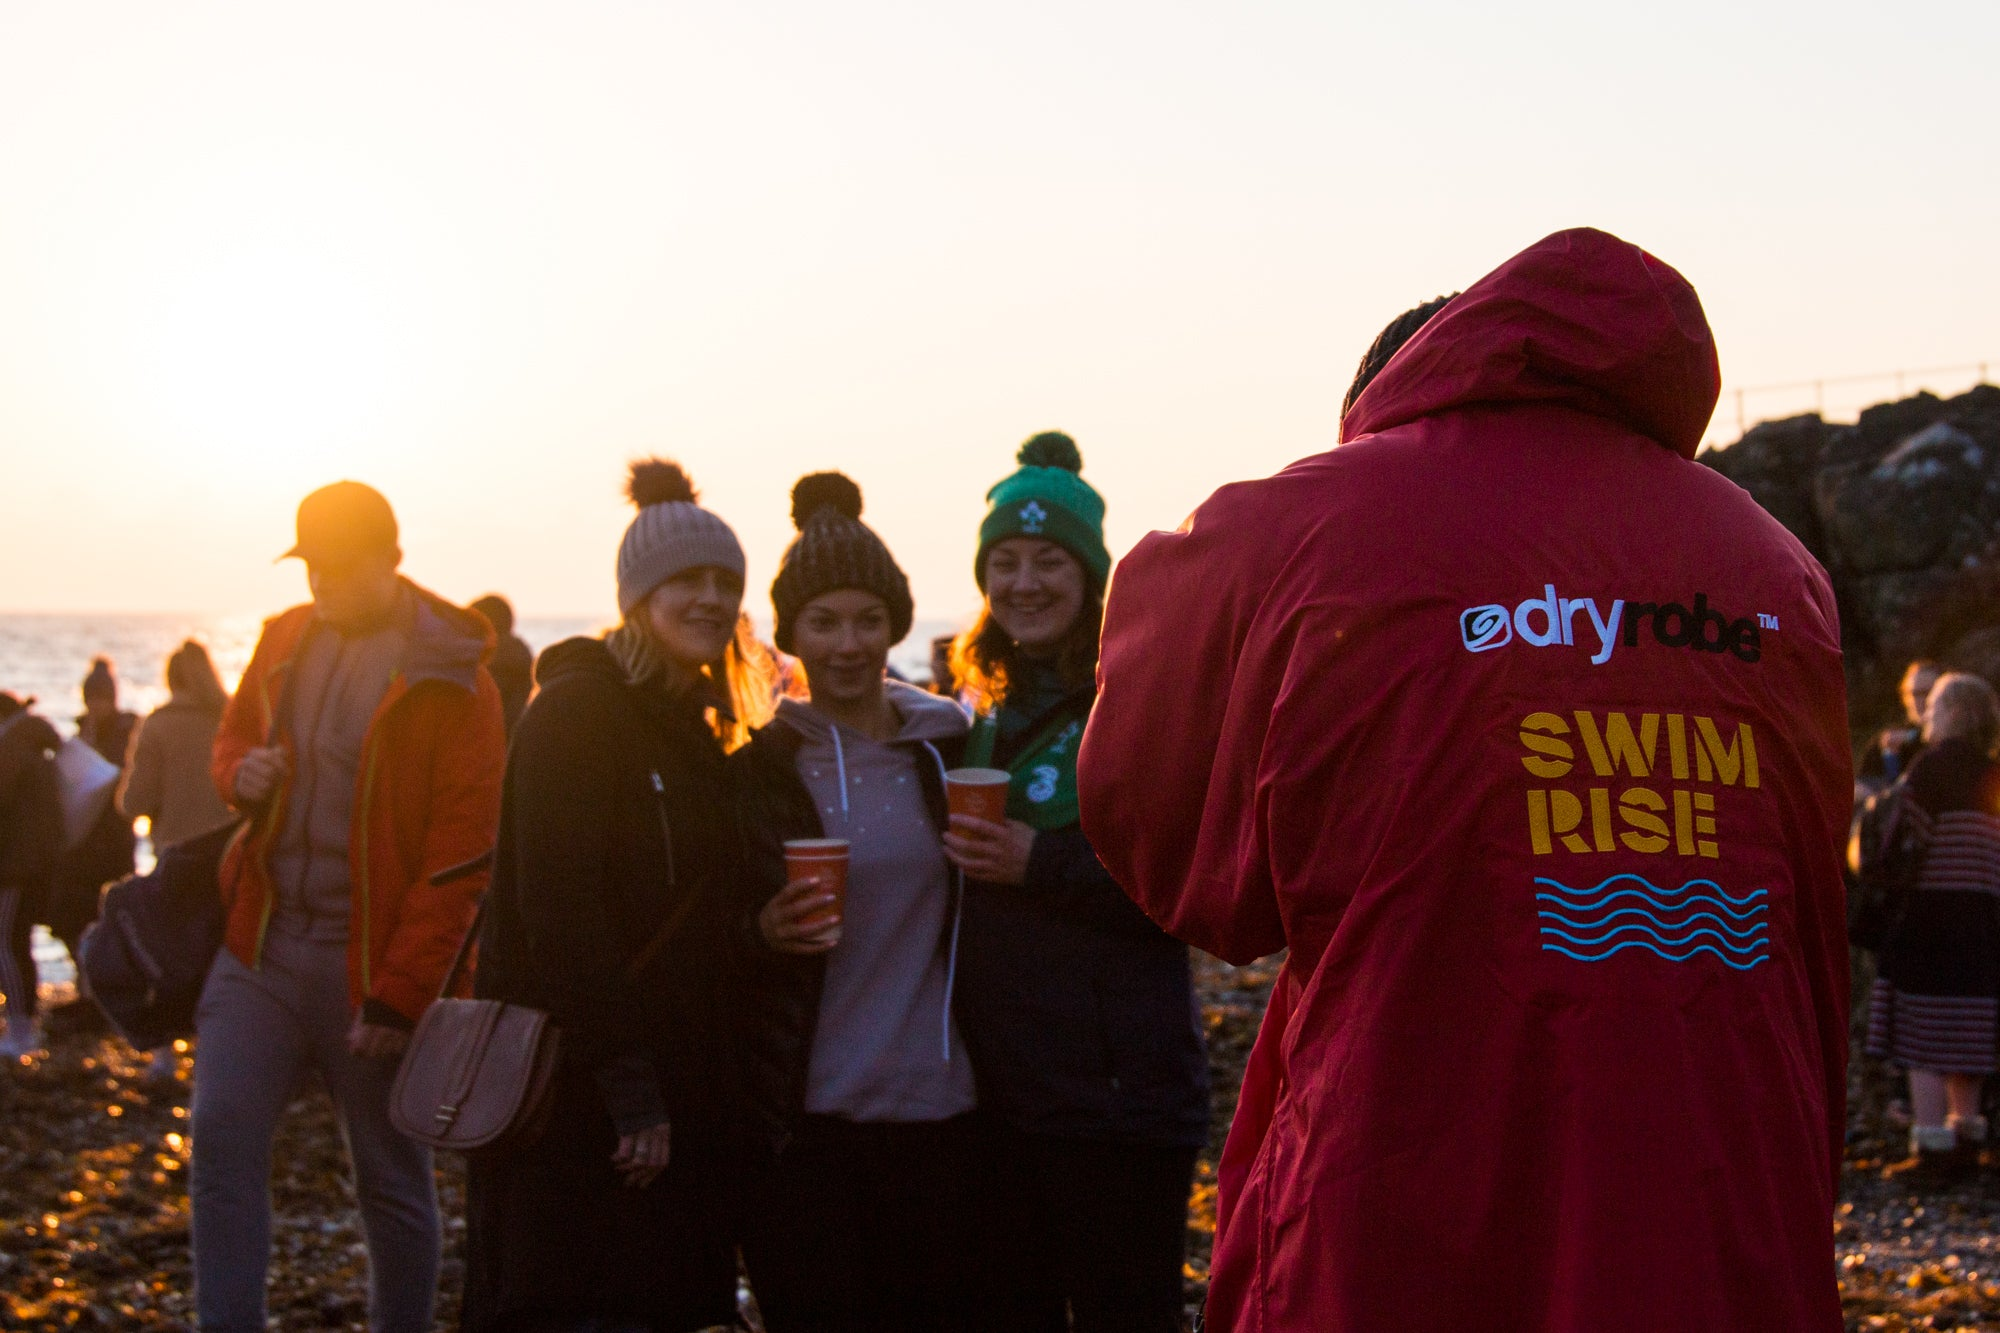 Limited Edition Happy Pear swimrise dryrobe at Greystones, May 2019